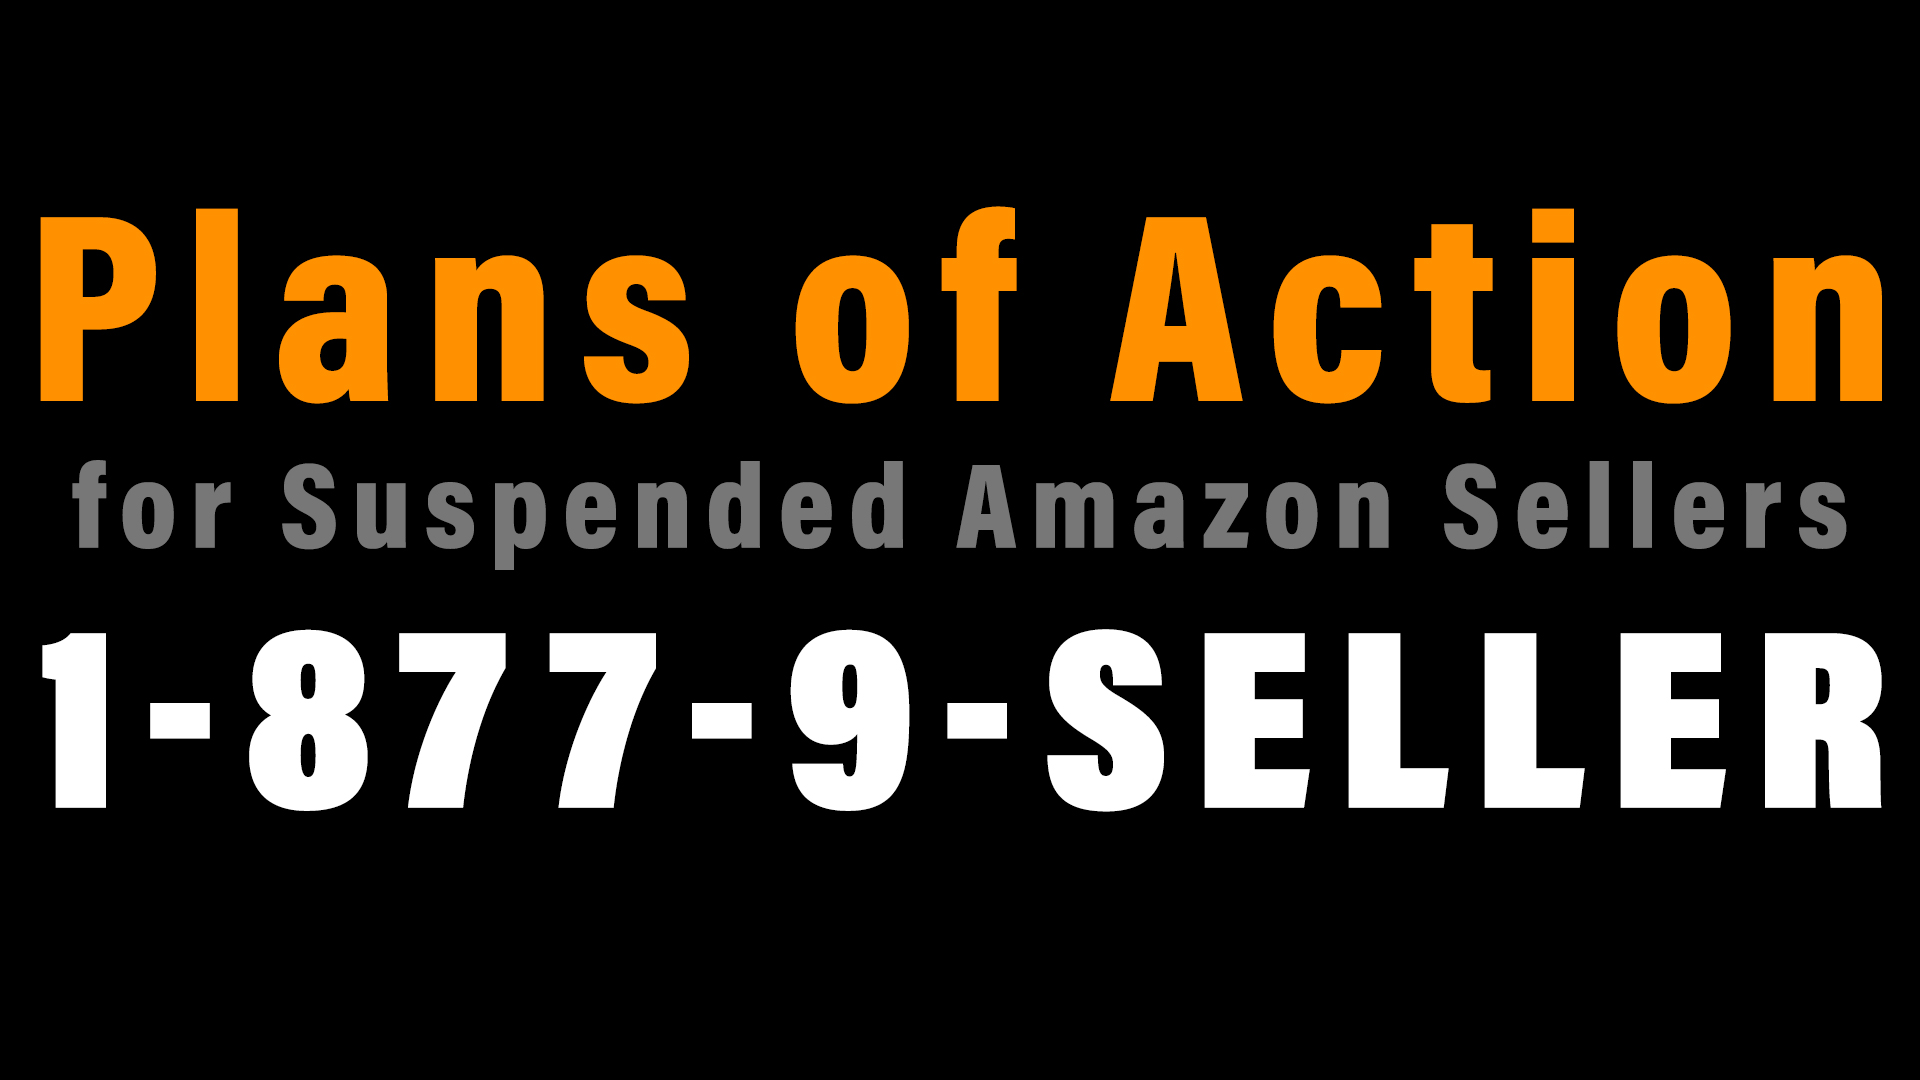 restricted product suspensions on Amazon sellers